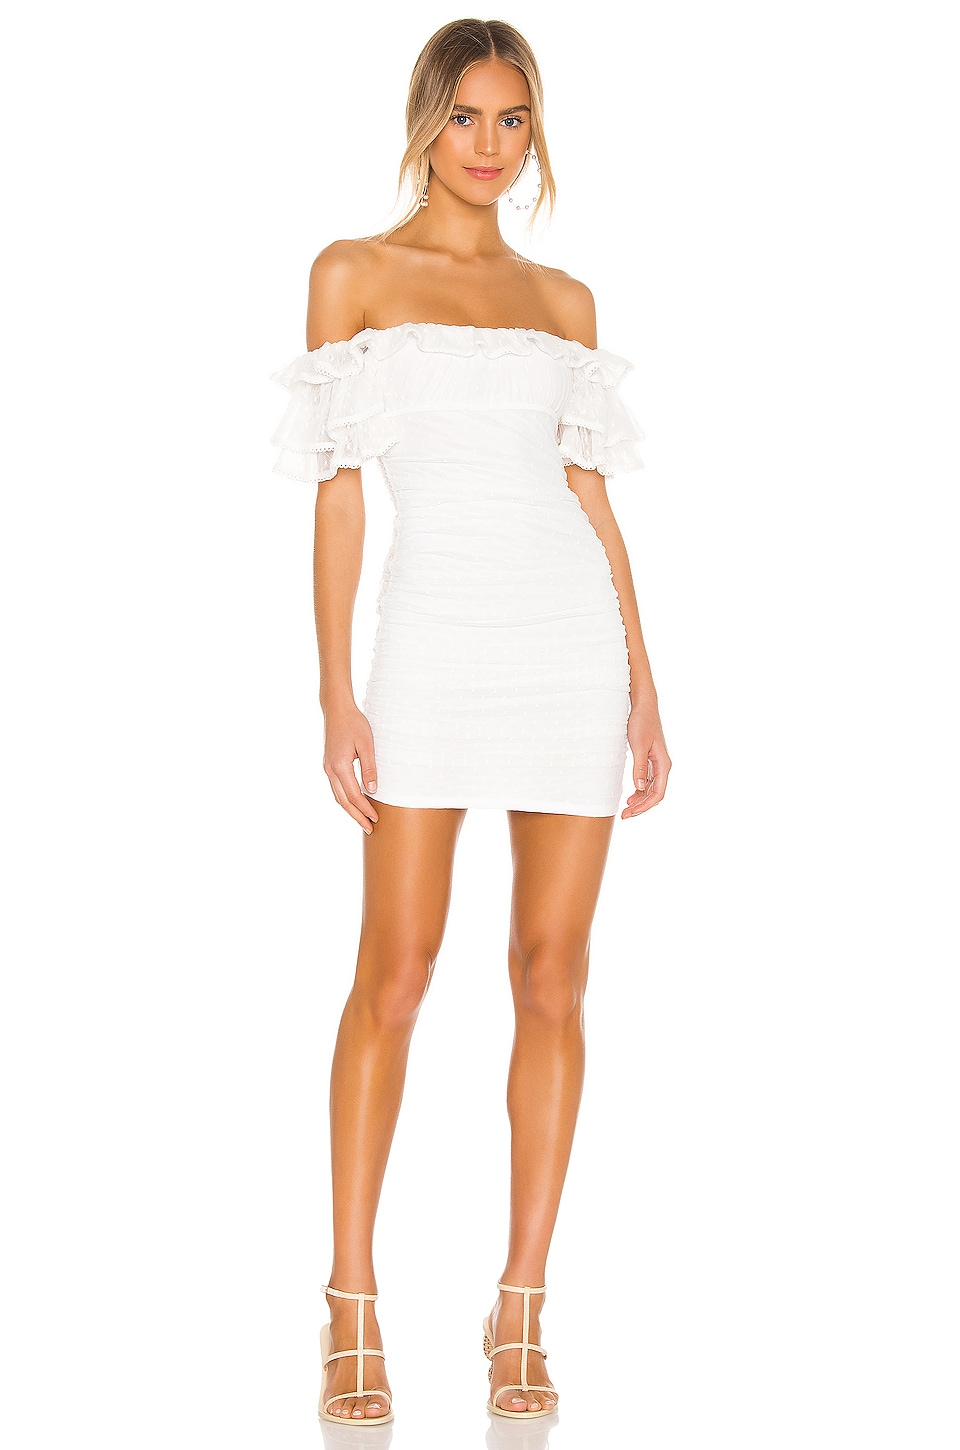 Eva Mini Dress             Camila Coelho                                                                                                       CA$ 300.48 13